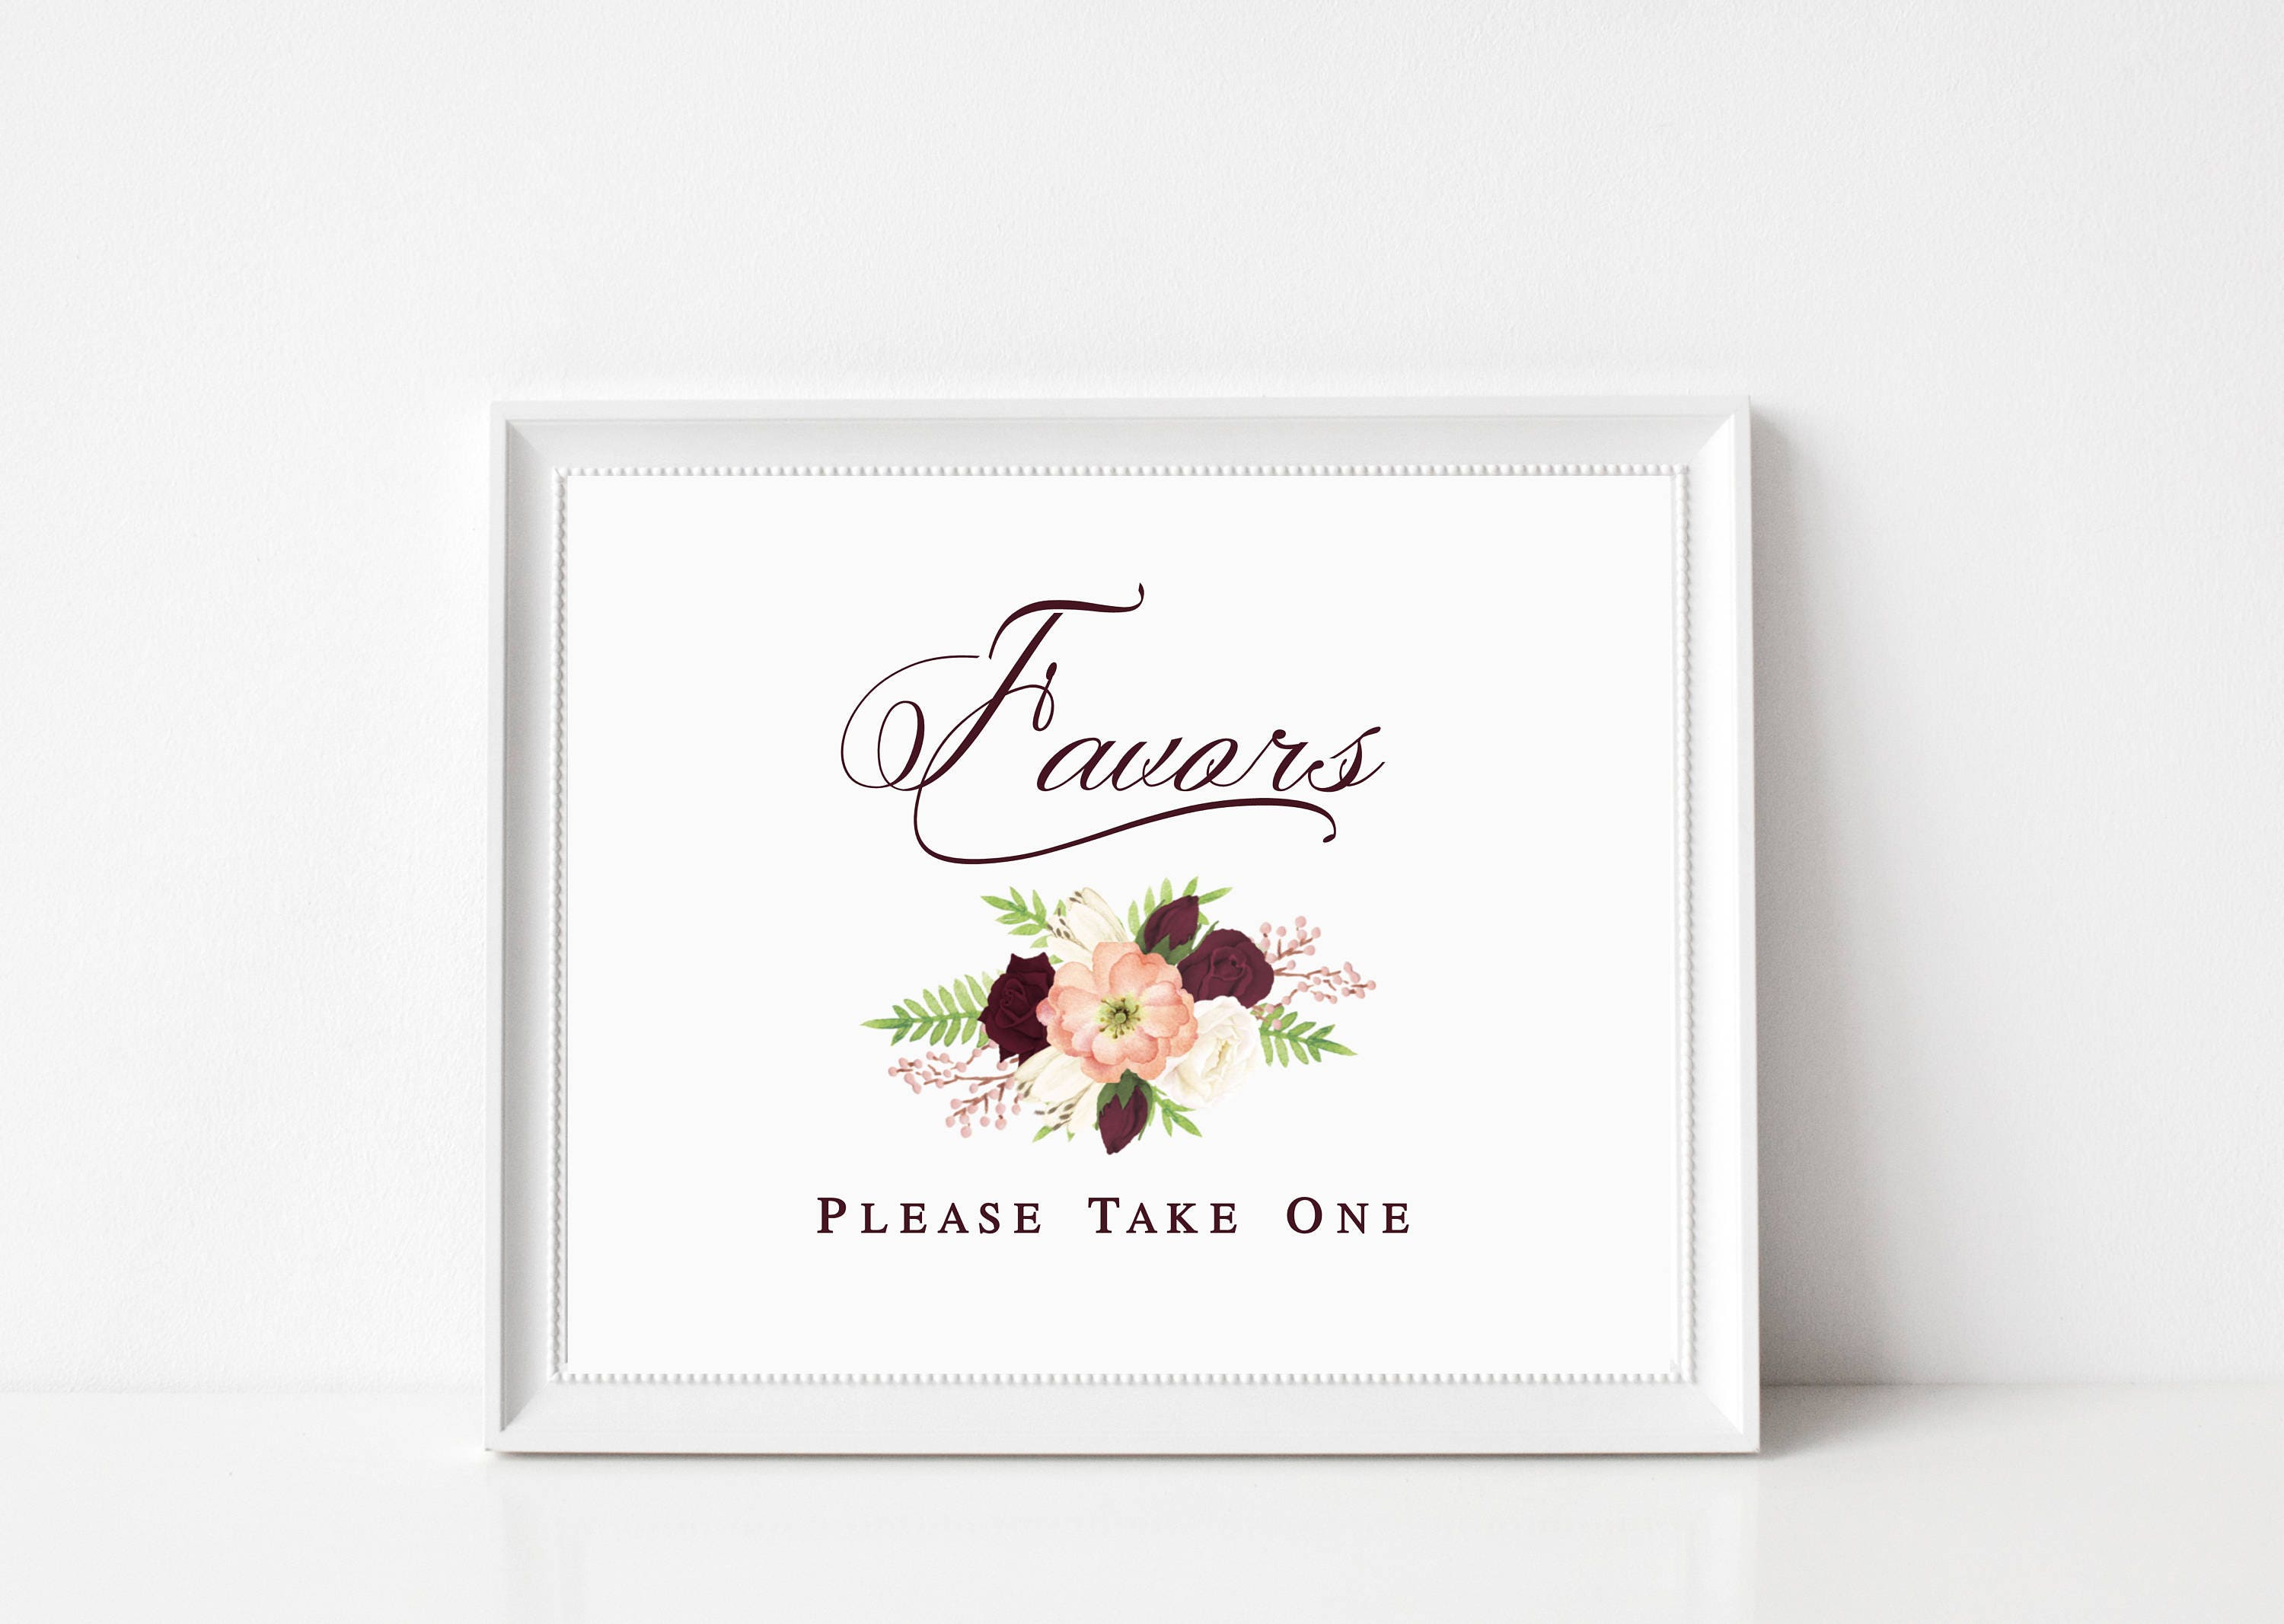 Wedding Favors Sign | Wedding Guest Gifts Sign | Wedding Reception ...